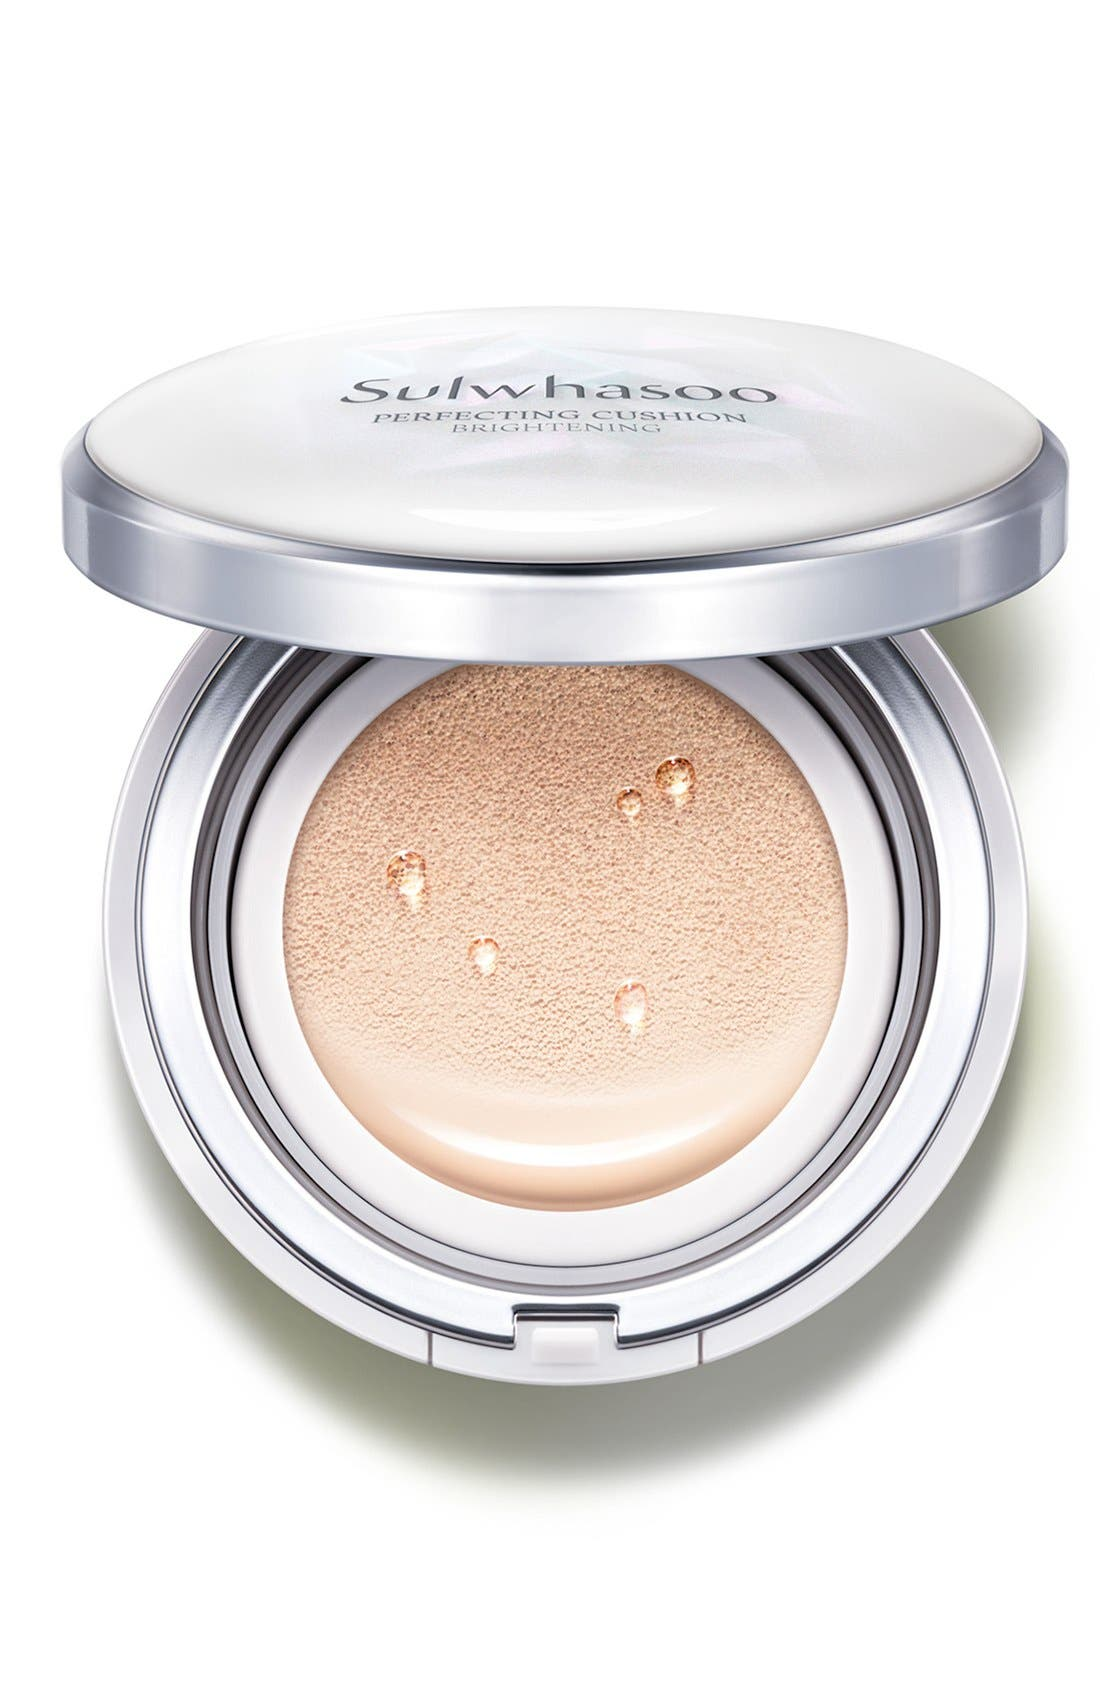 Sulwhasoo Perfecting Cushion Brightening Foundation